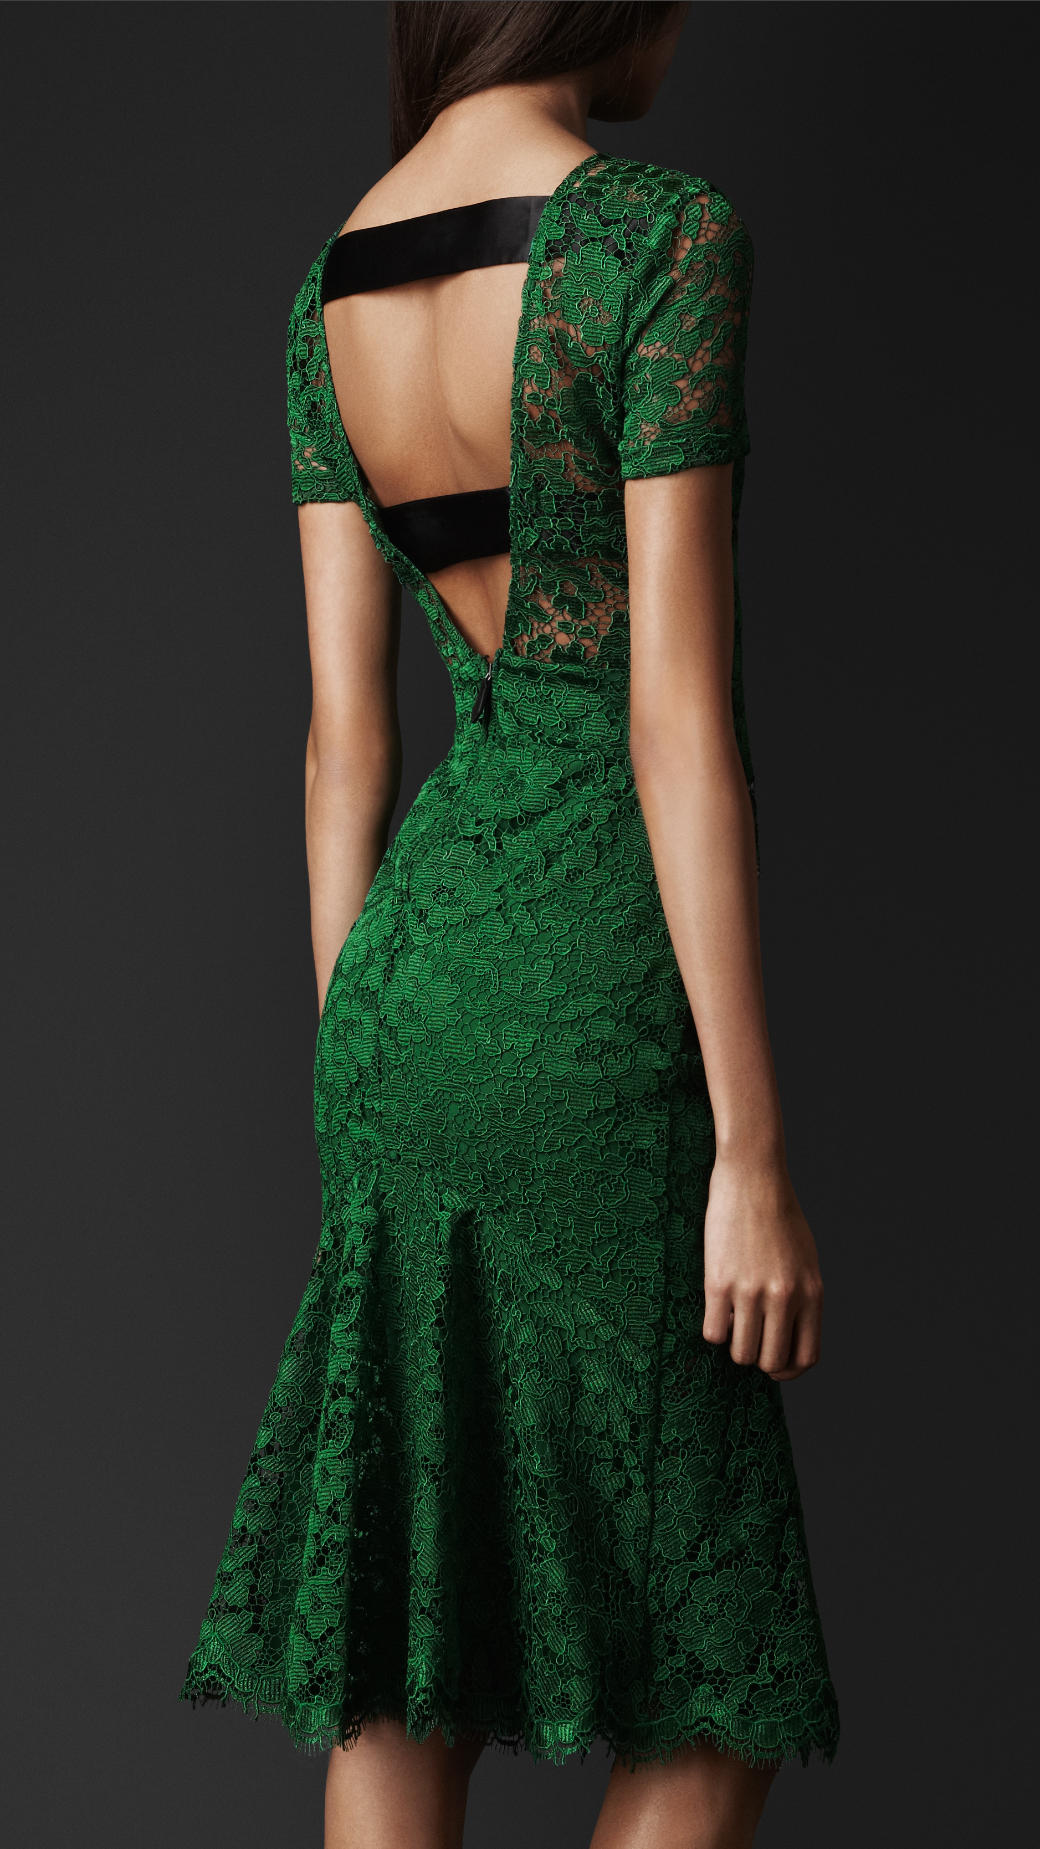 Burberry prorsum Cutoutback Lace Dress in Green (kelly ...